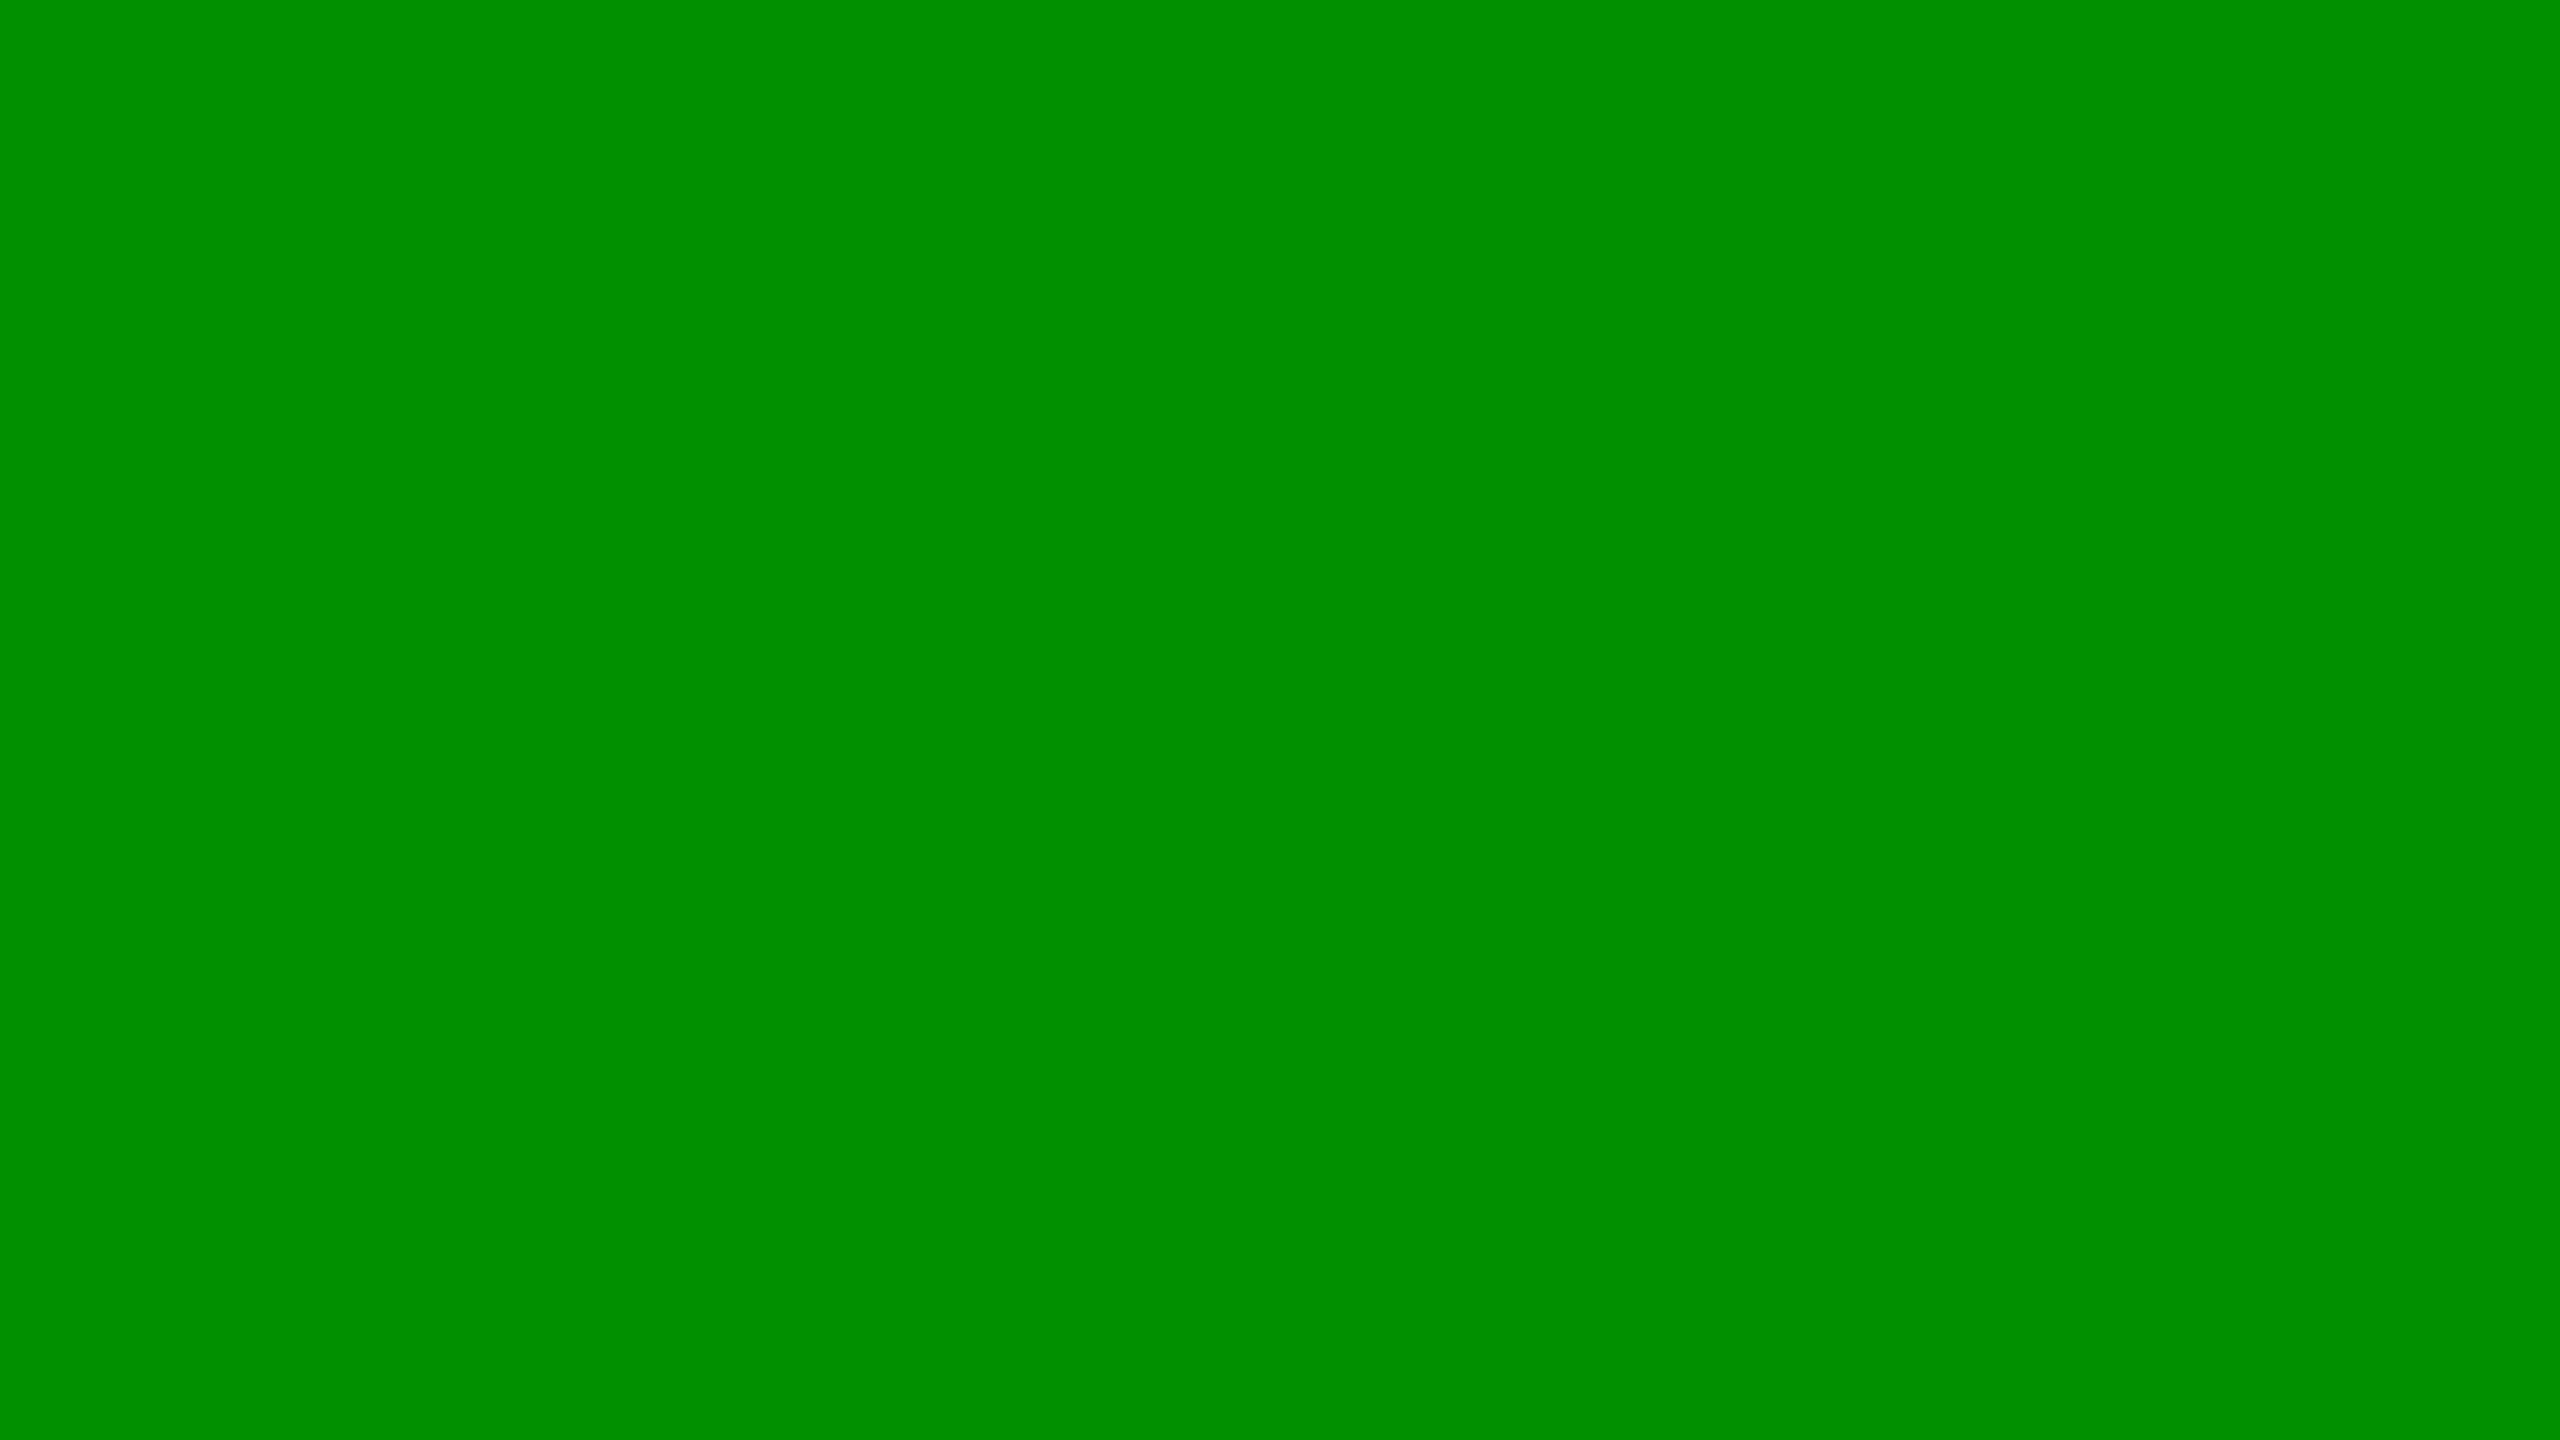 2560x1440 Islamic Green Solid Color Background